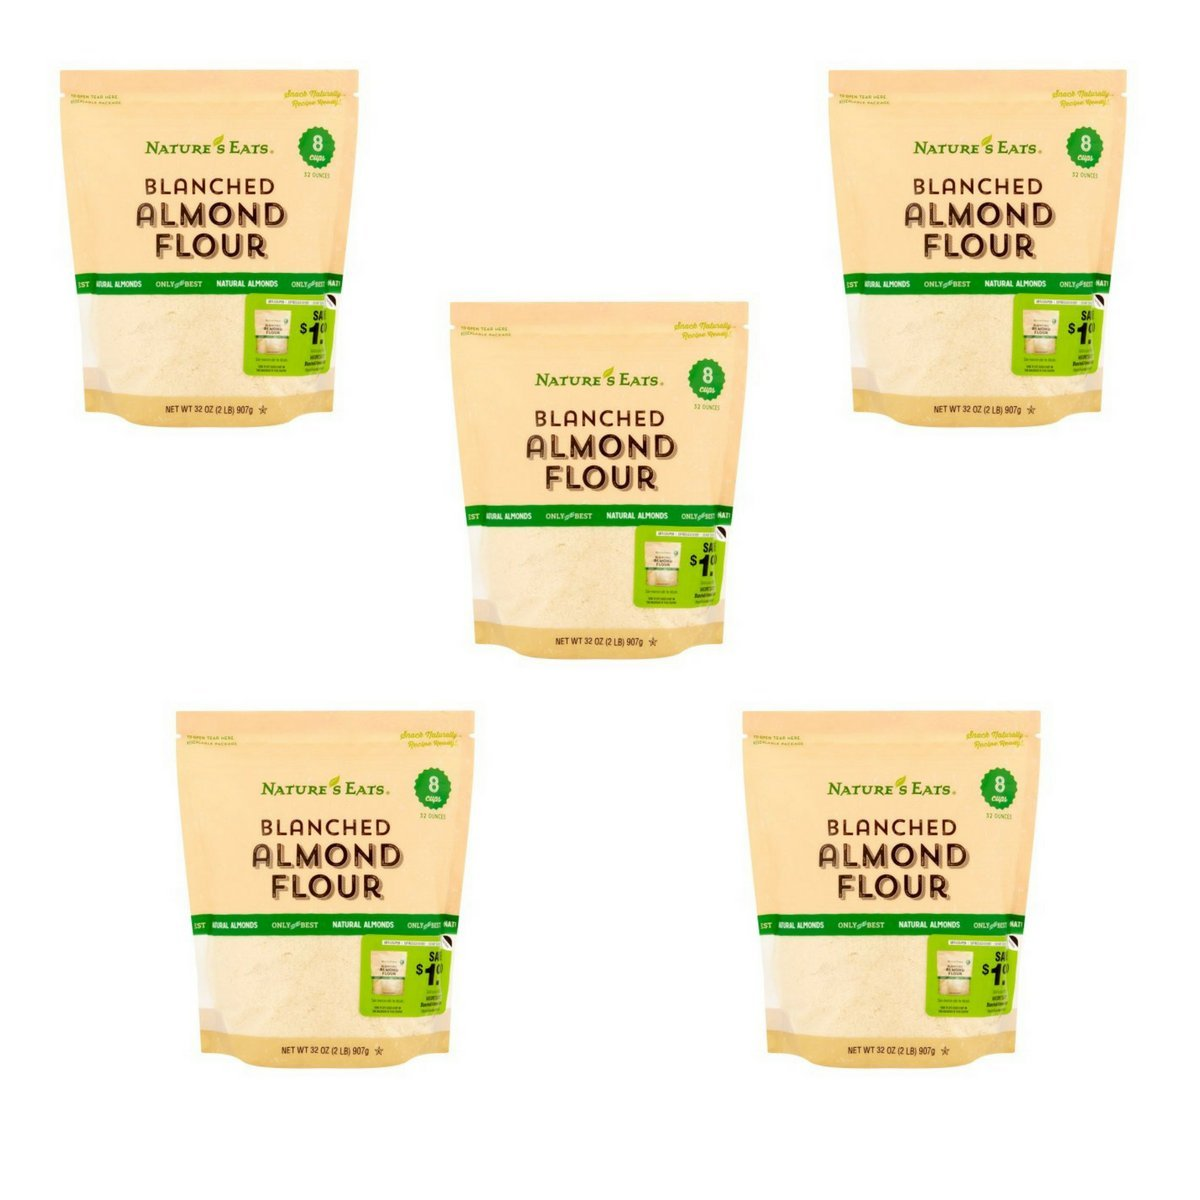 Nature's Eats Blanched Almond Flour, 32 Ounce(Pack of 5)